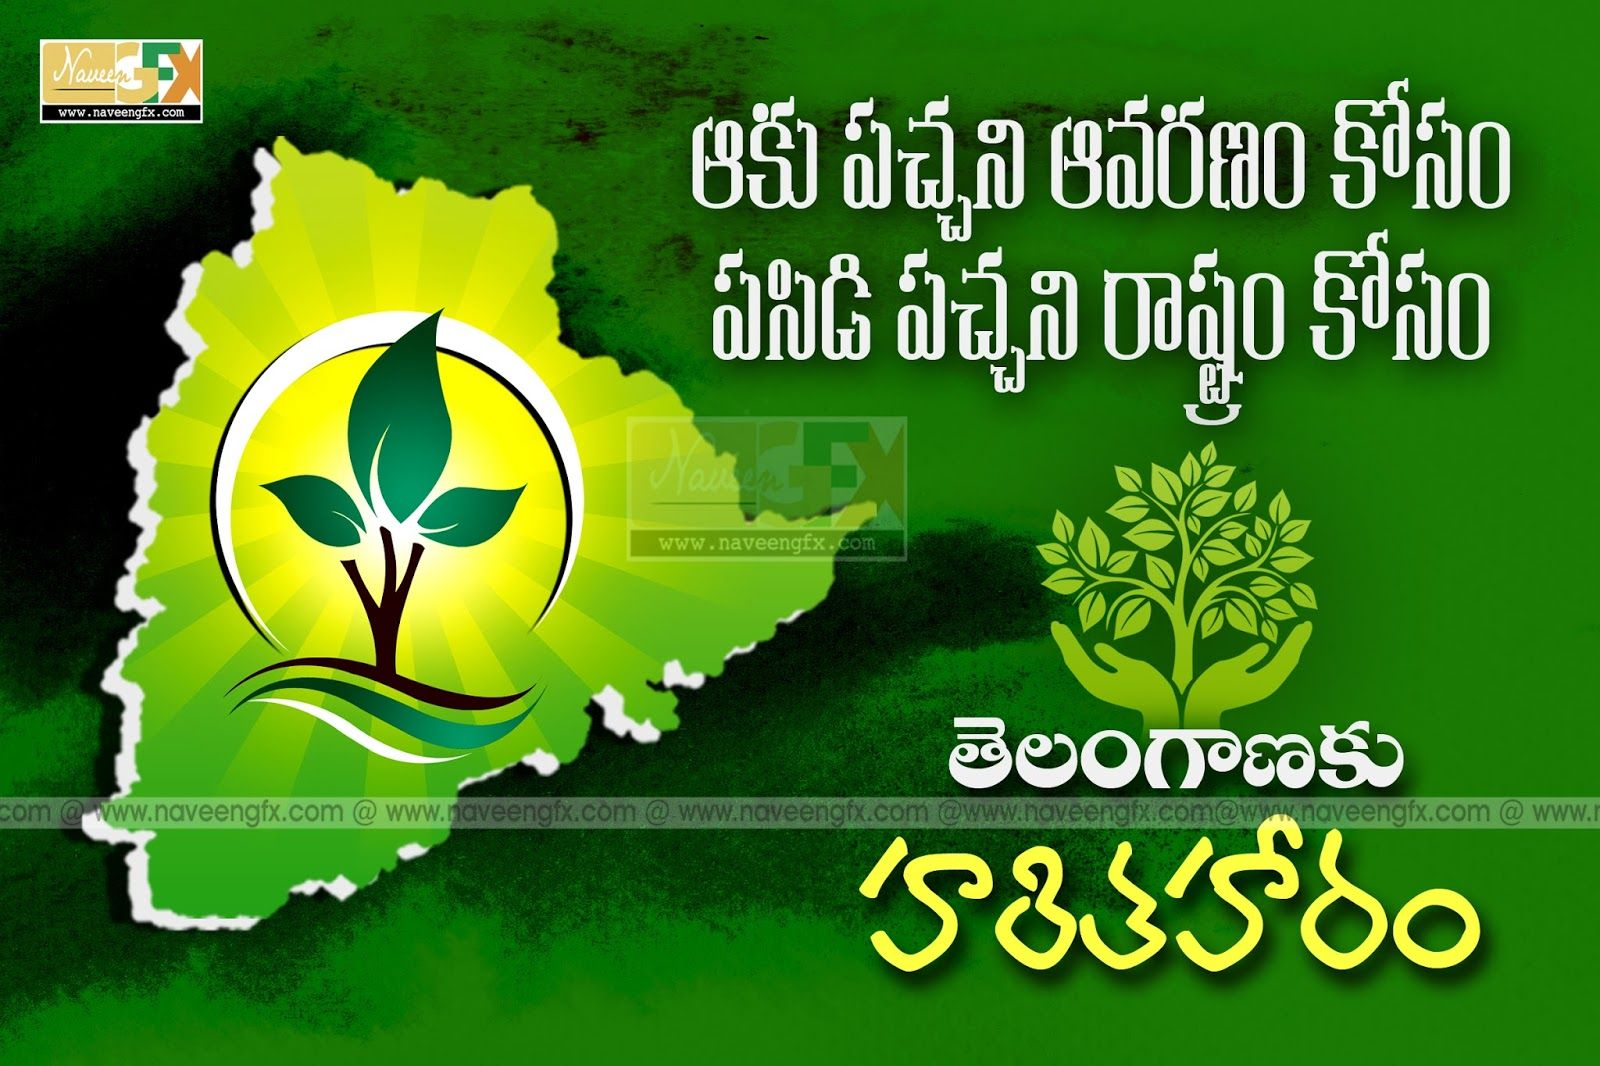 haritha haram famous tree planting quotes and pictures in telugu language haritha haram tree planting